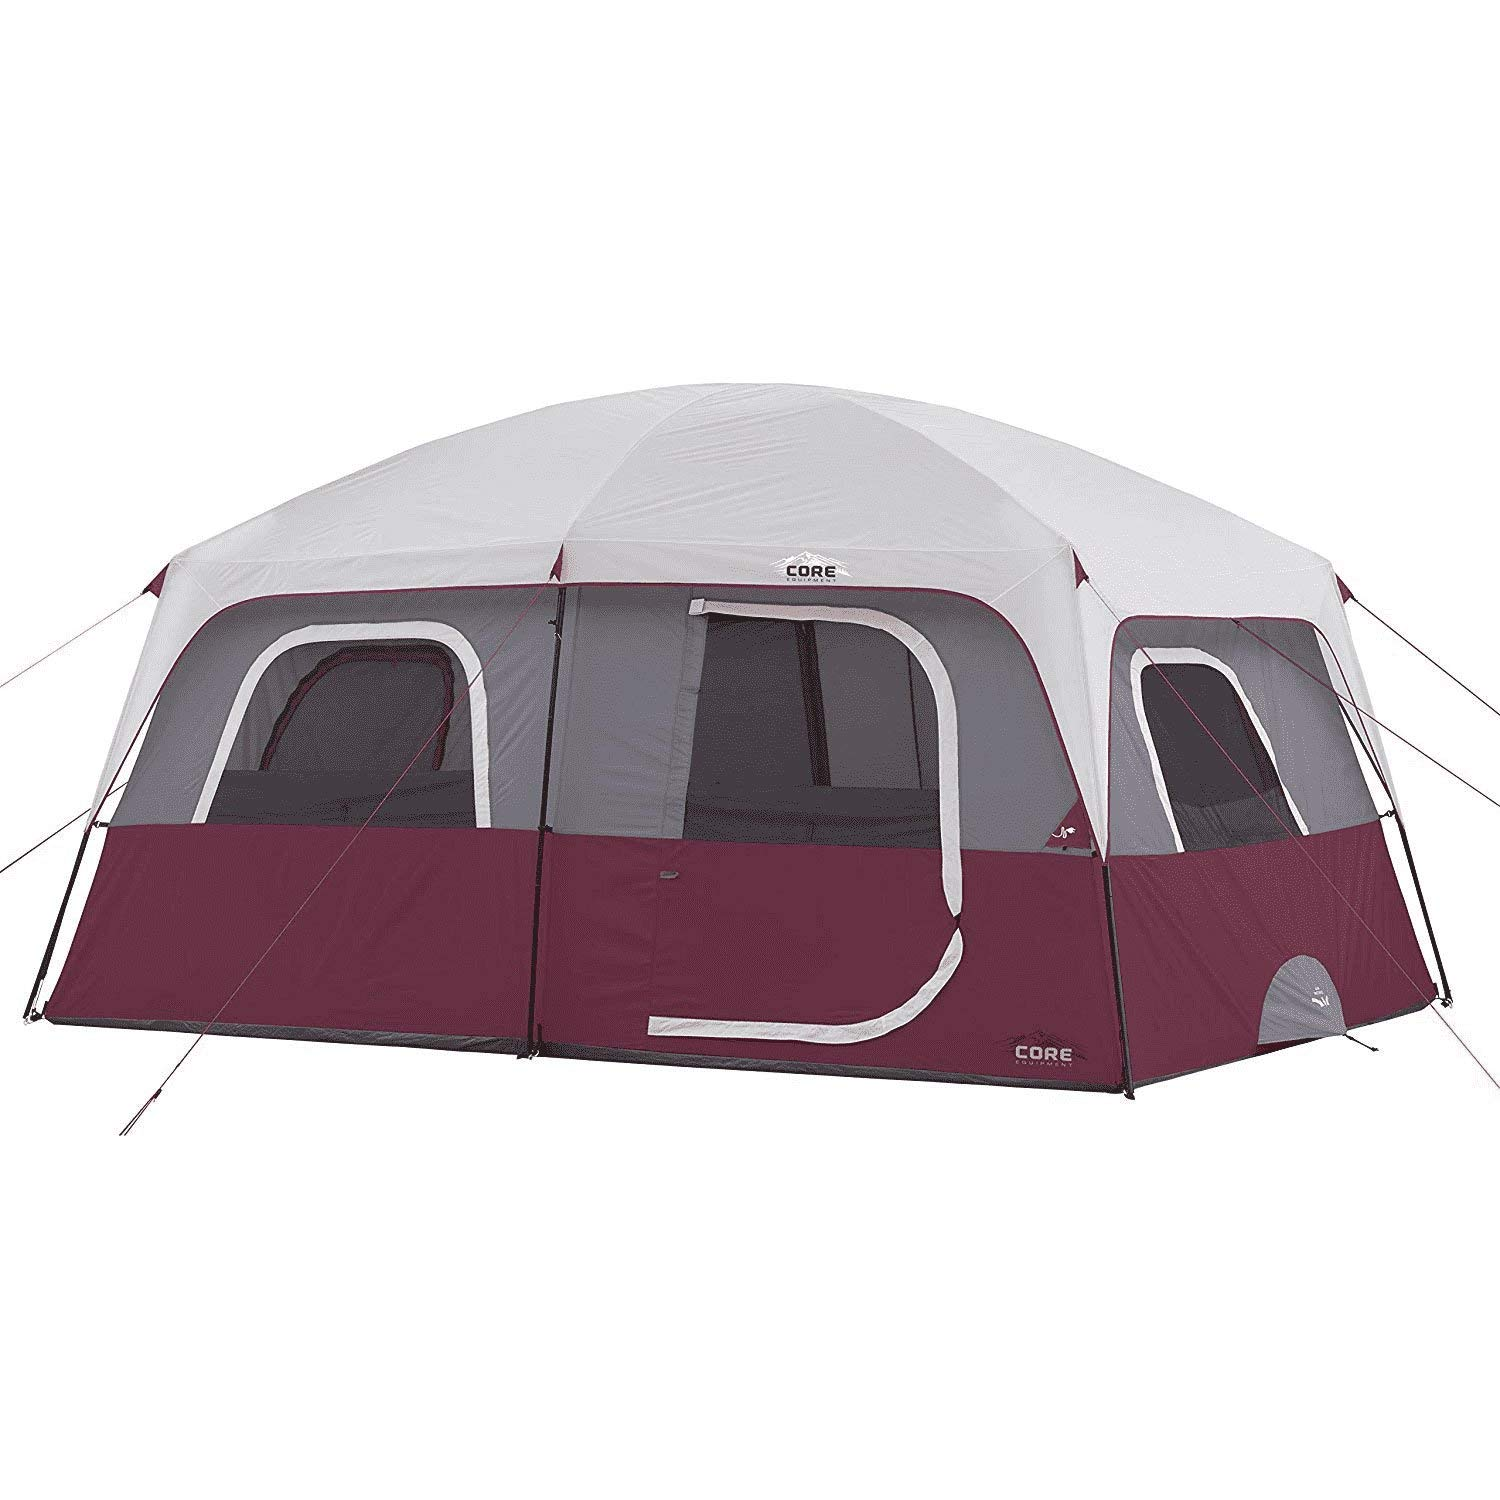 CORE 10 Person Straight Wall Cabin Tent (Wine) by CORE